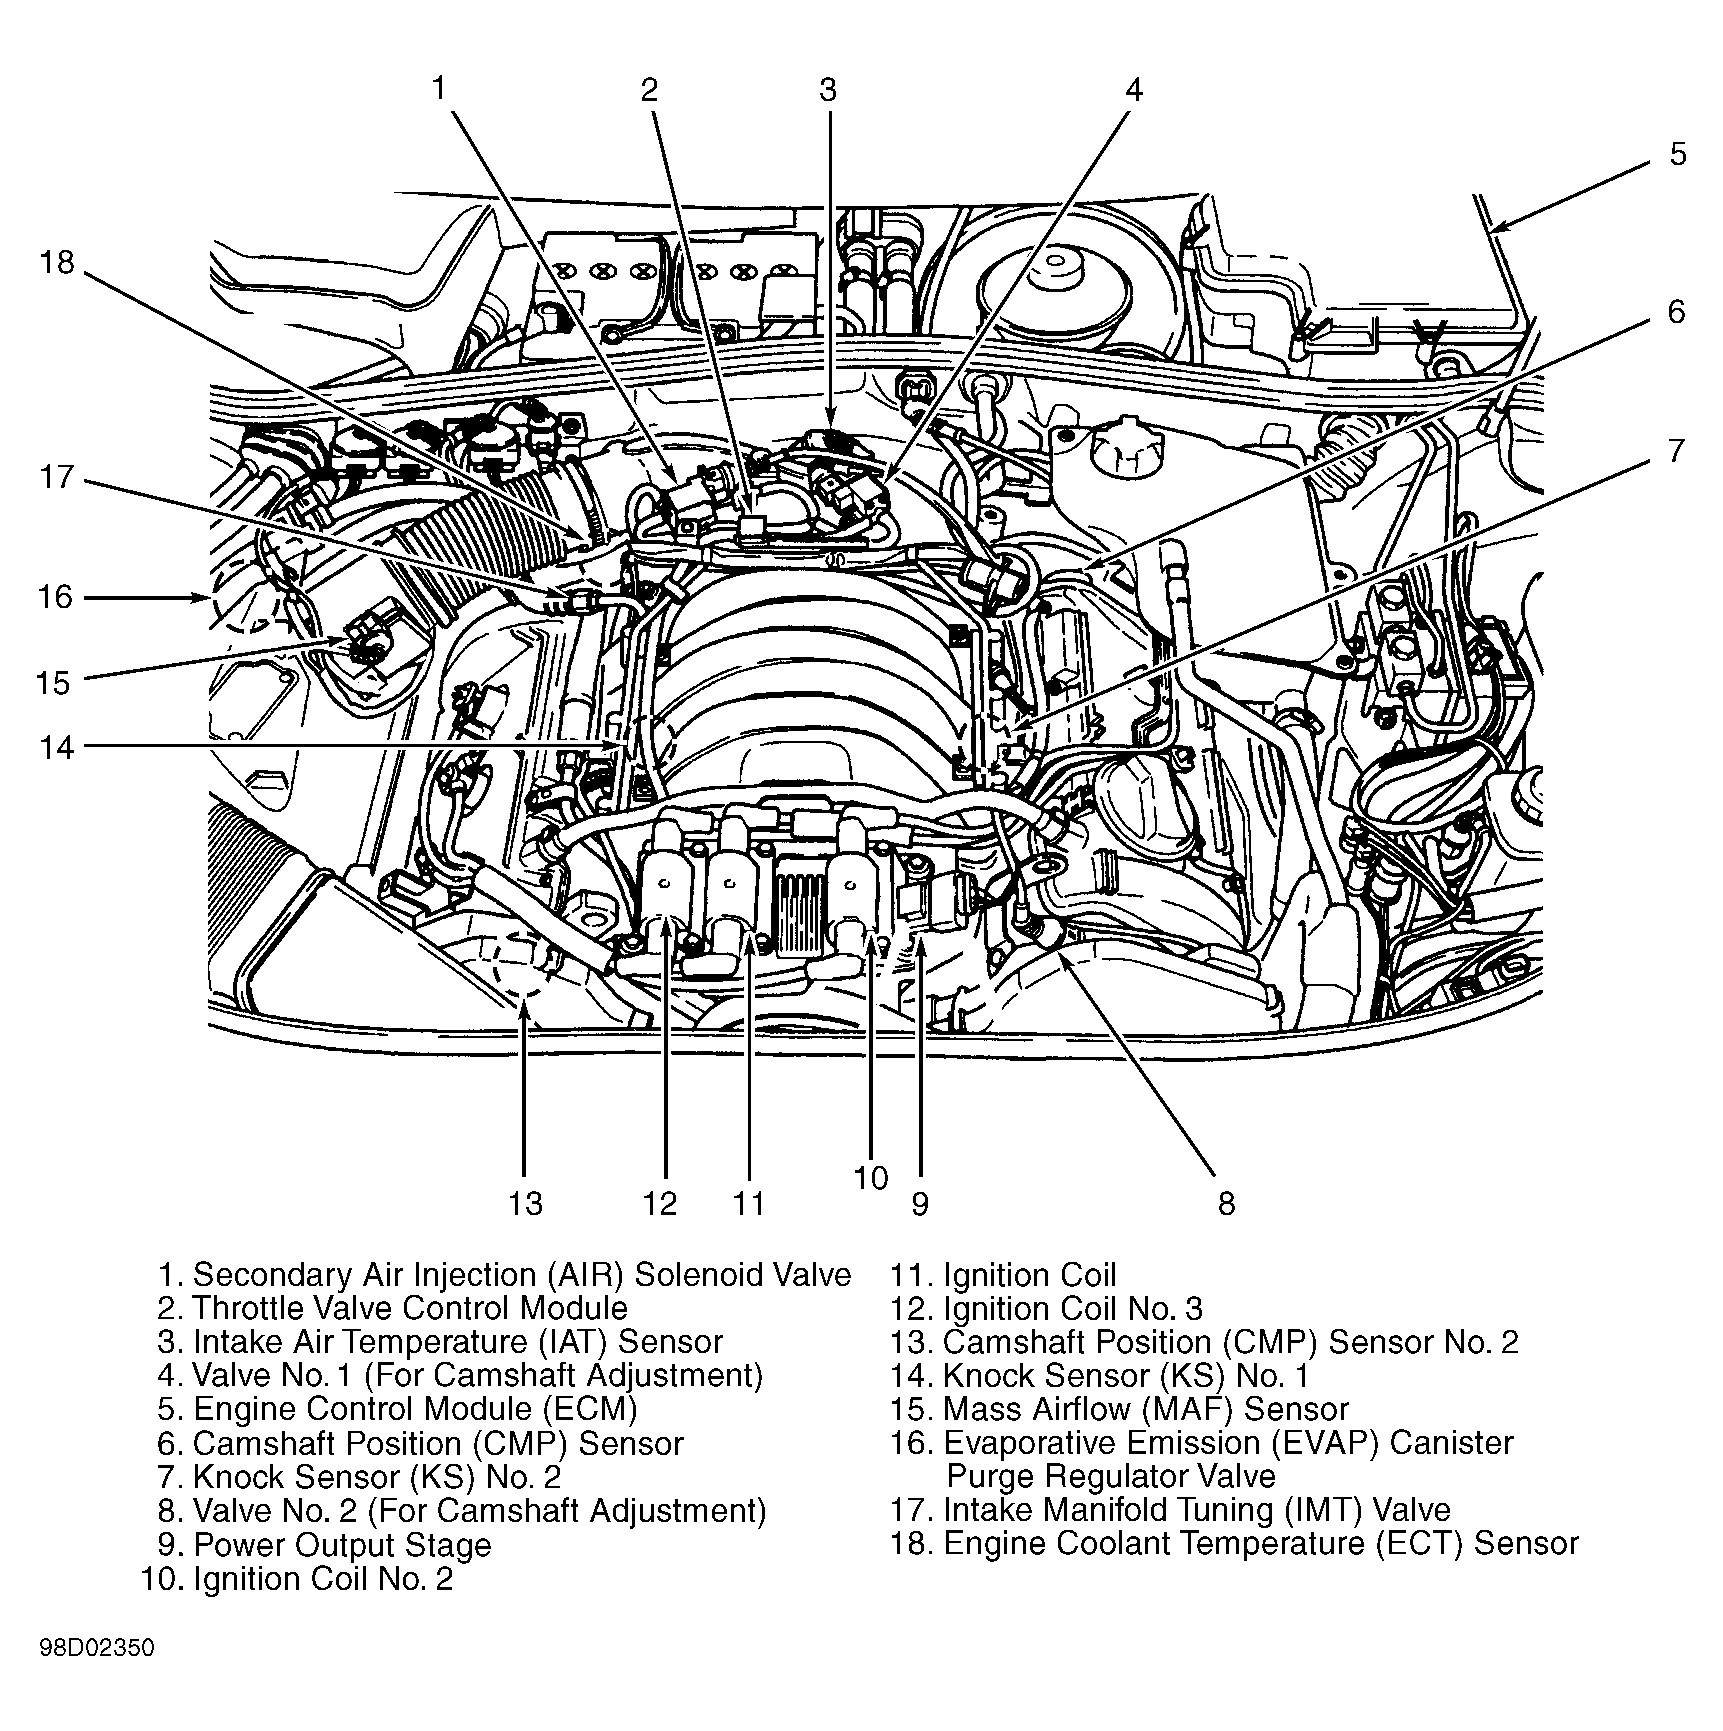 2008 Audi A4 Engine Diagram 2008 Audi A4 Engine Diagram Automotive Block Diagram • Of 2008 Audi A4 Engine Diagram